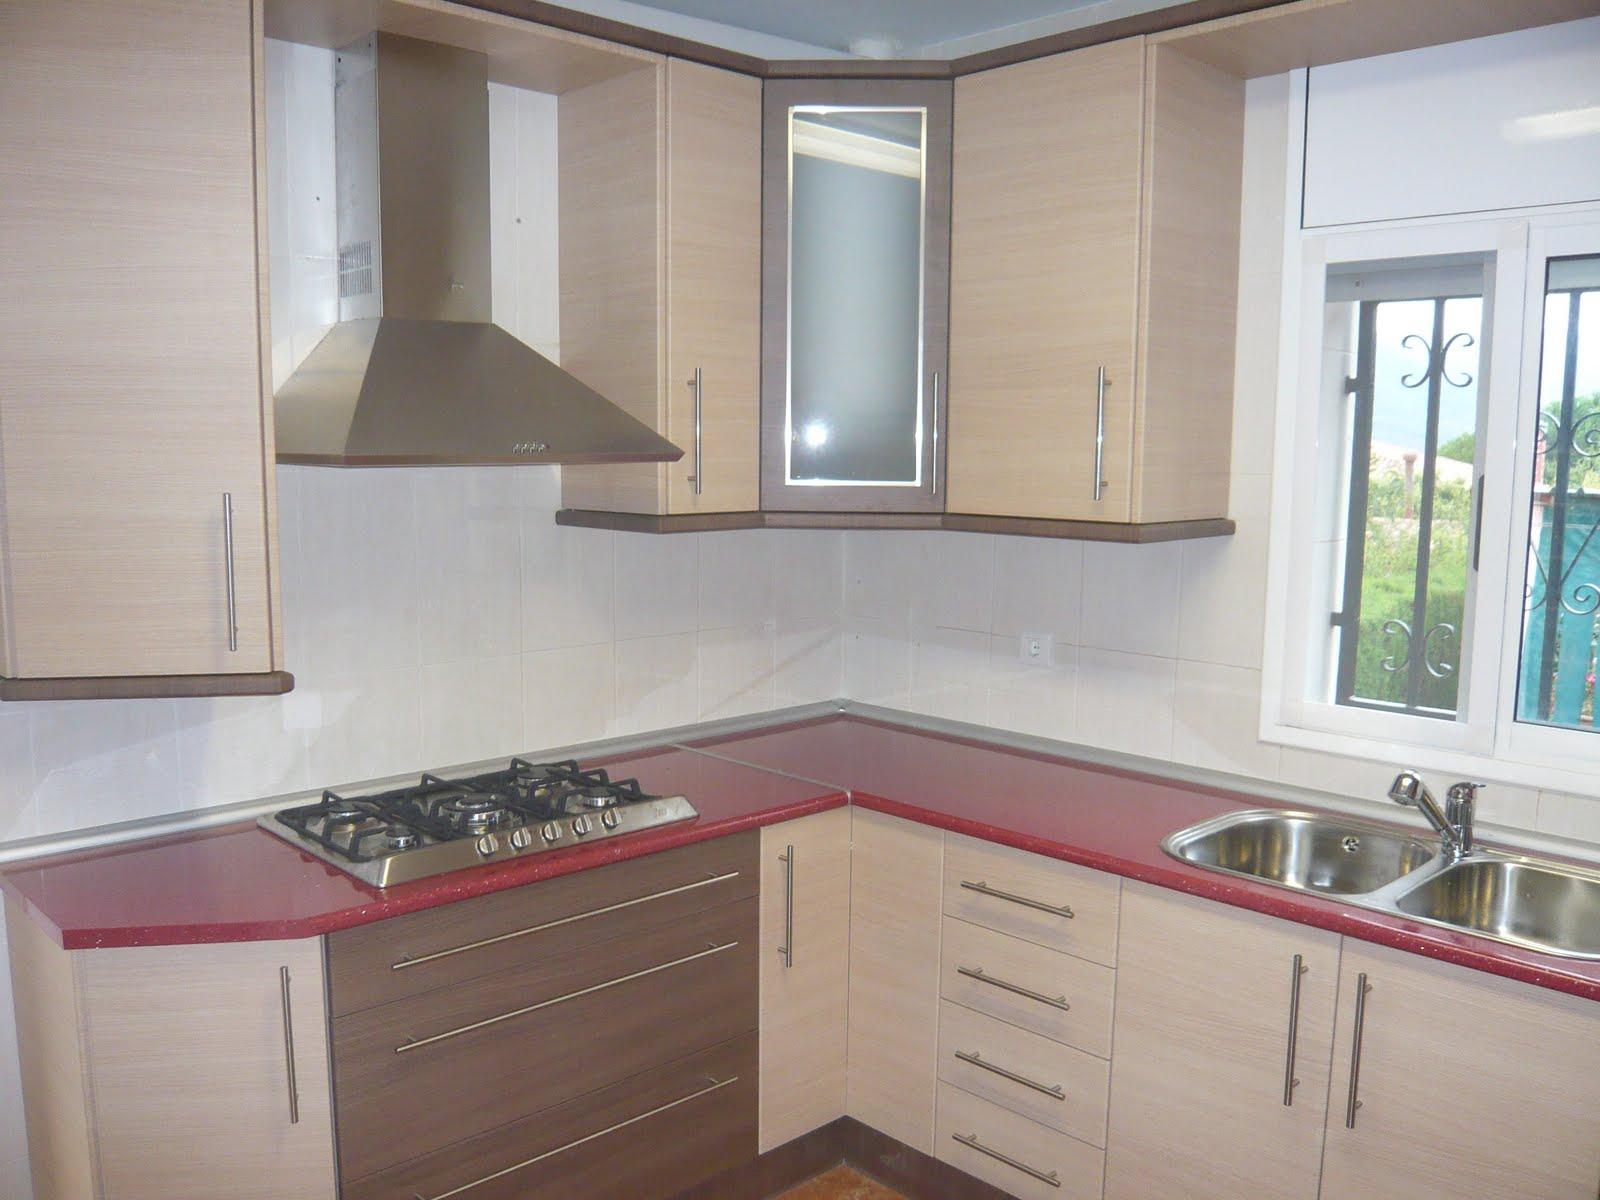 Reuscuina cocina de formica en color roble combinada - Cocinas color roble ...